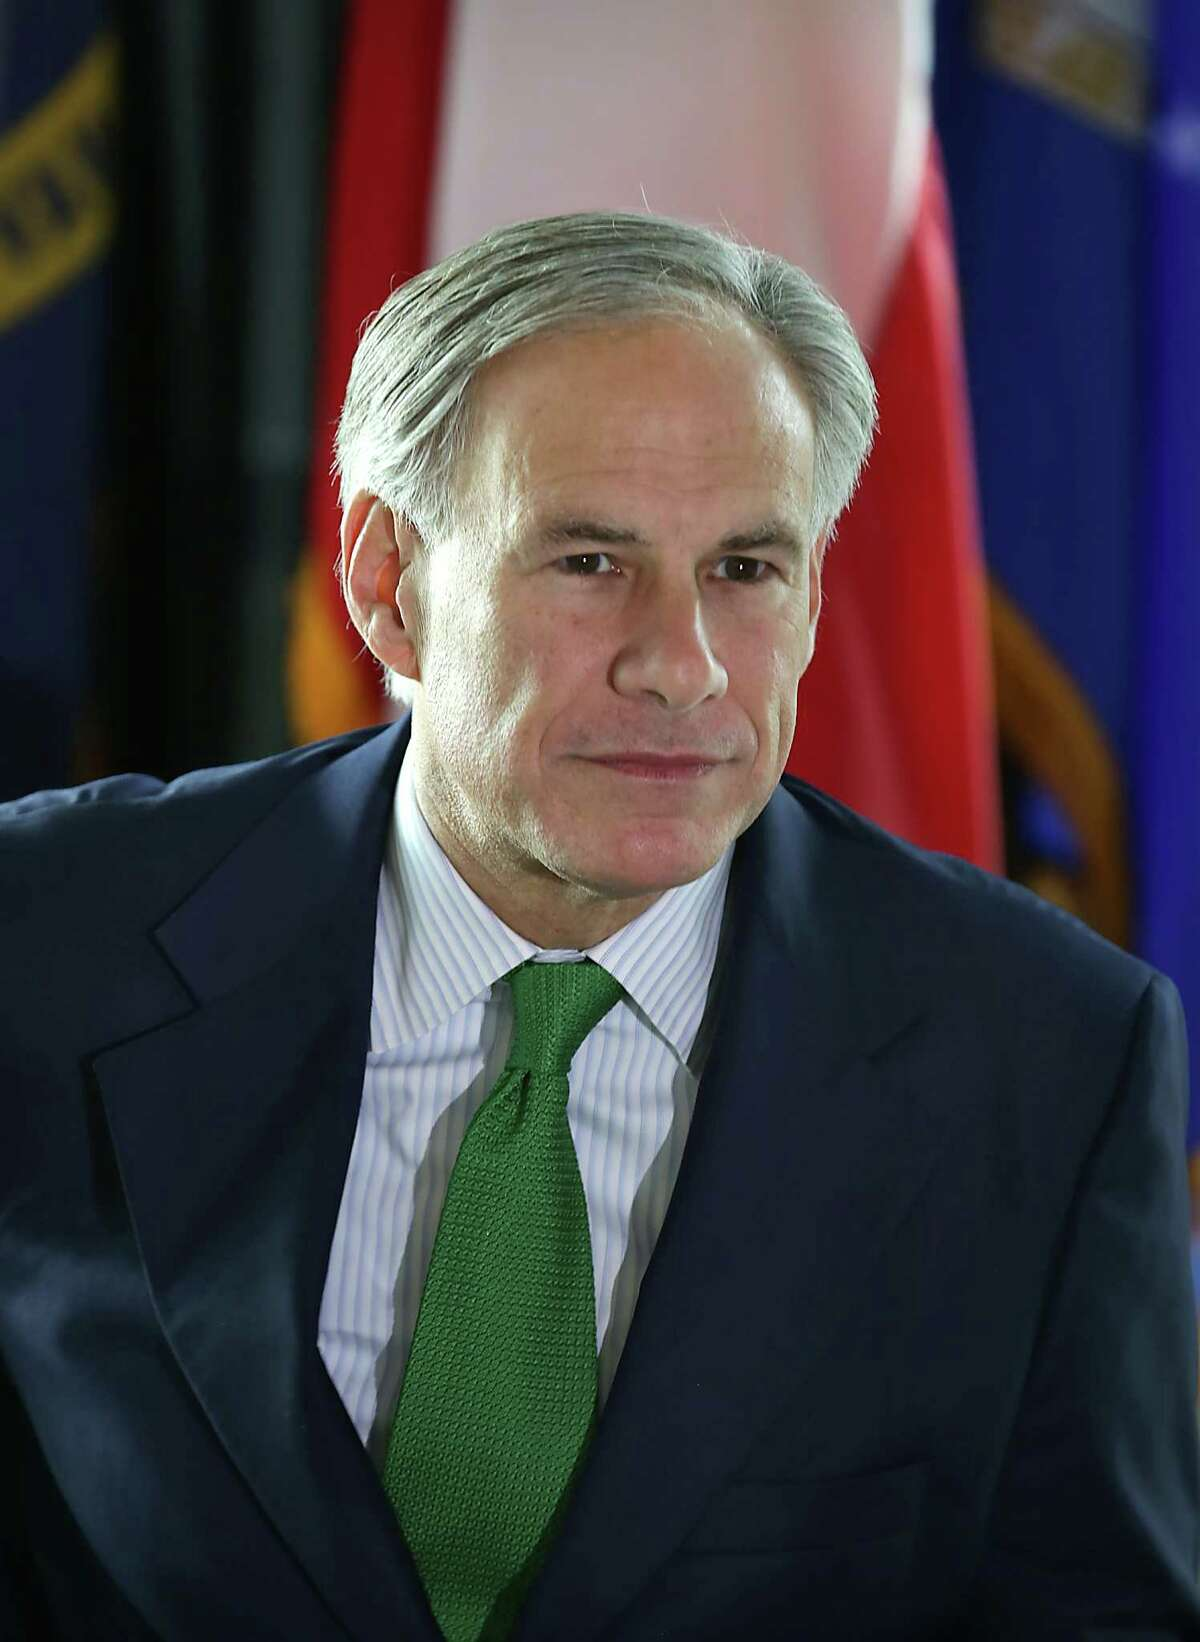 """Gov. Greg Abbott visits the Texas Workforce Commission's """"Hiring Red, White and You!"""" event on Thursday, Nov. 12, 2015 at the Alamodome in San Antonio. The event was also taking place in other Texas cities."""